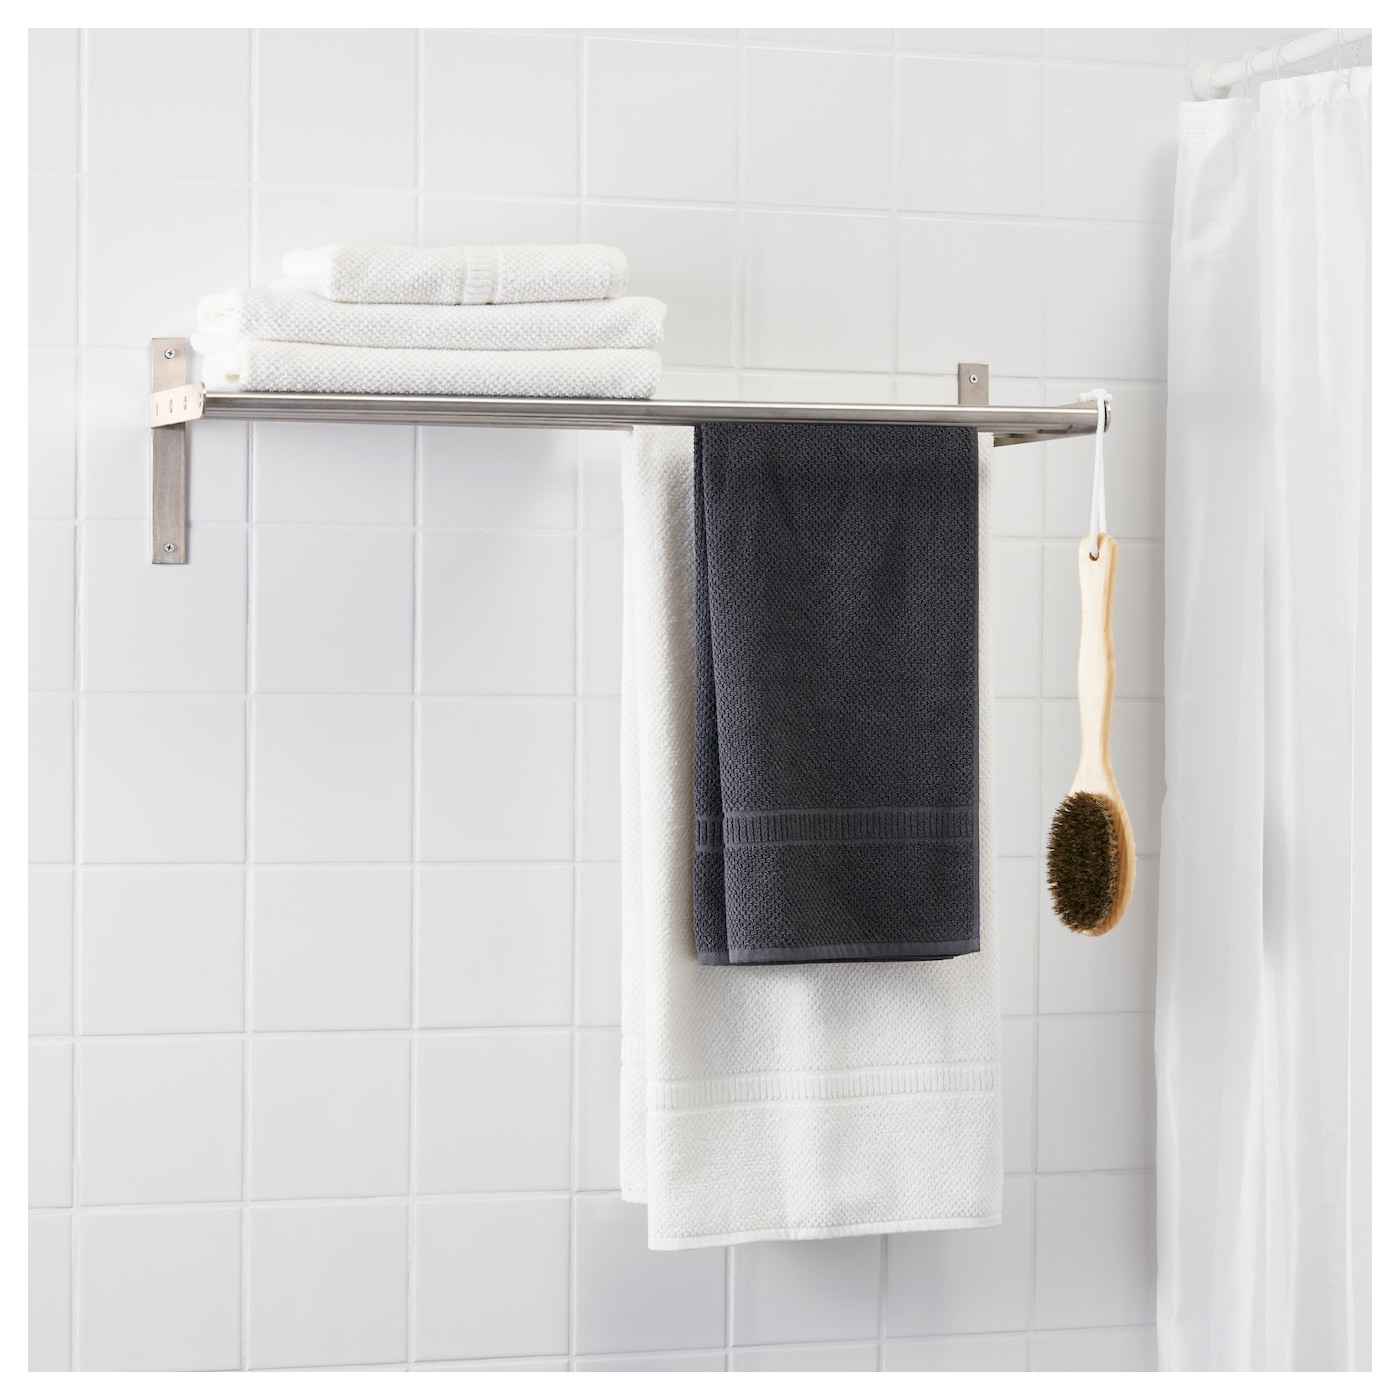 Grundtal towel hanger shelf stainless steel ikea Towel storage ideas ikea